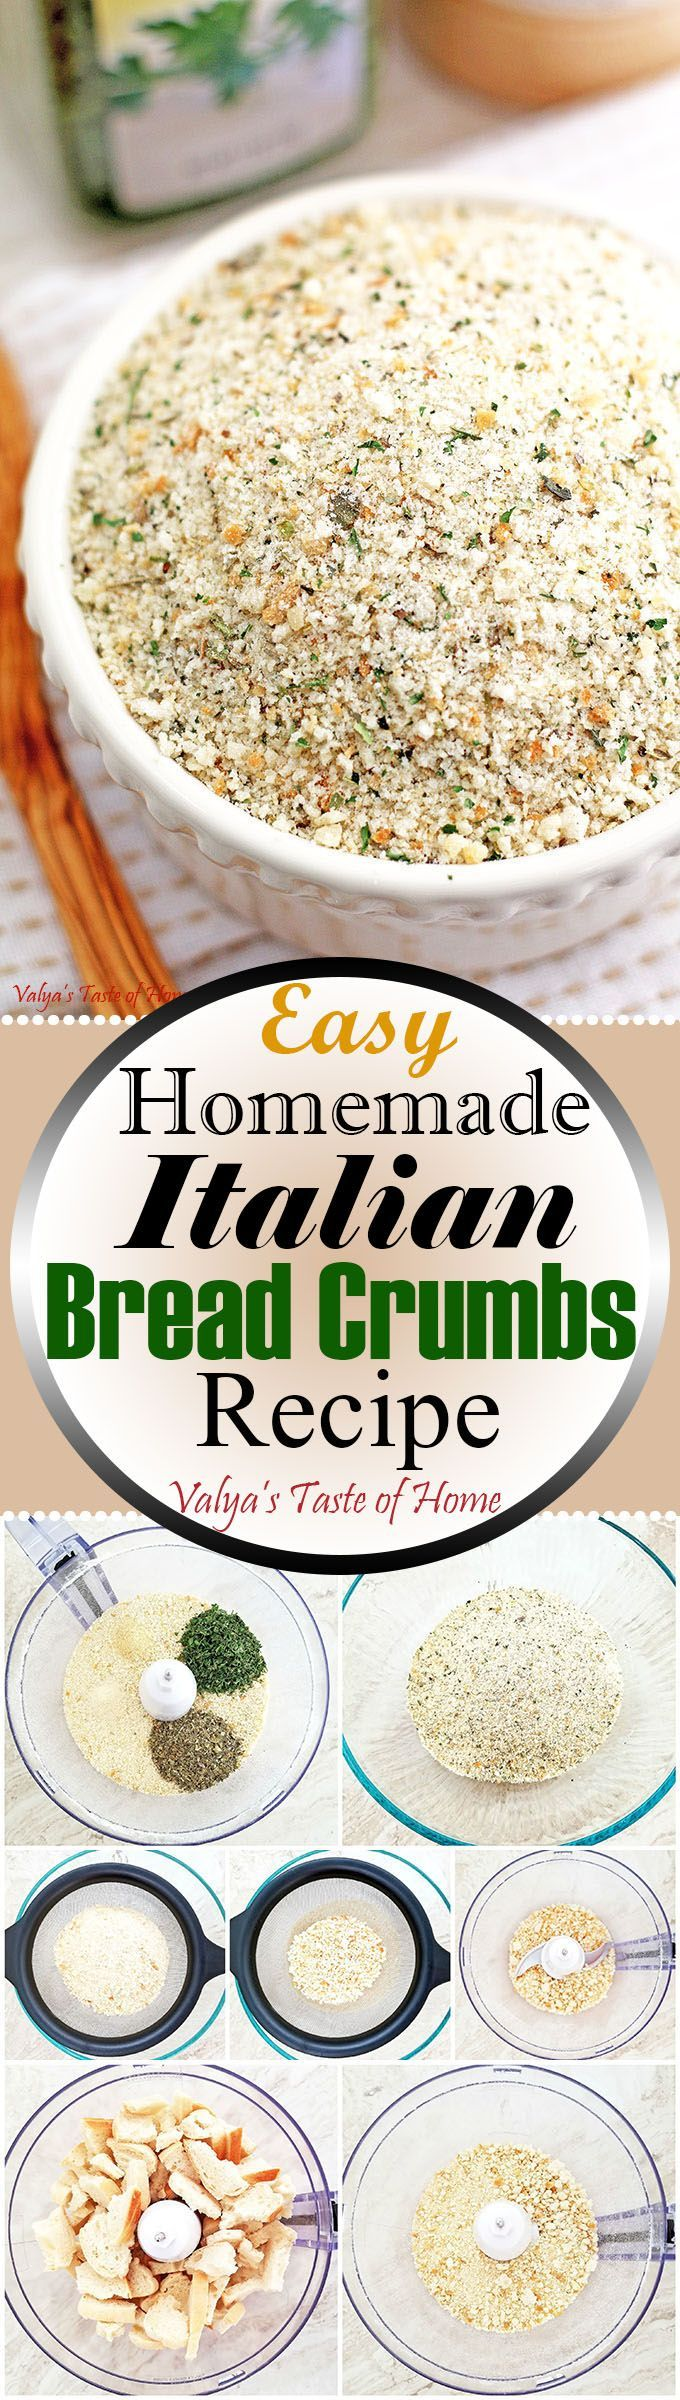 It's so easy to make this Italian Bread Crumbs recipe at home. I sliced Homemade bread into very thin slices and dried the slices in the oven. Then crushed dried bread in the food processor added seasoning and here you go. Results? The best tasting homemade breadcrumbs! I never bought breadcrumbs since then. Much more healthier and cleaner!